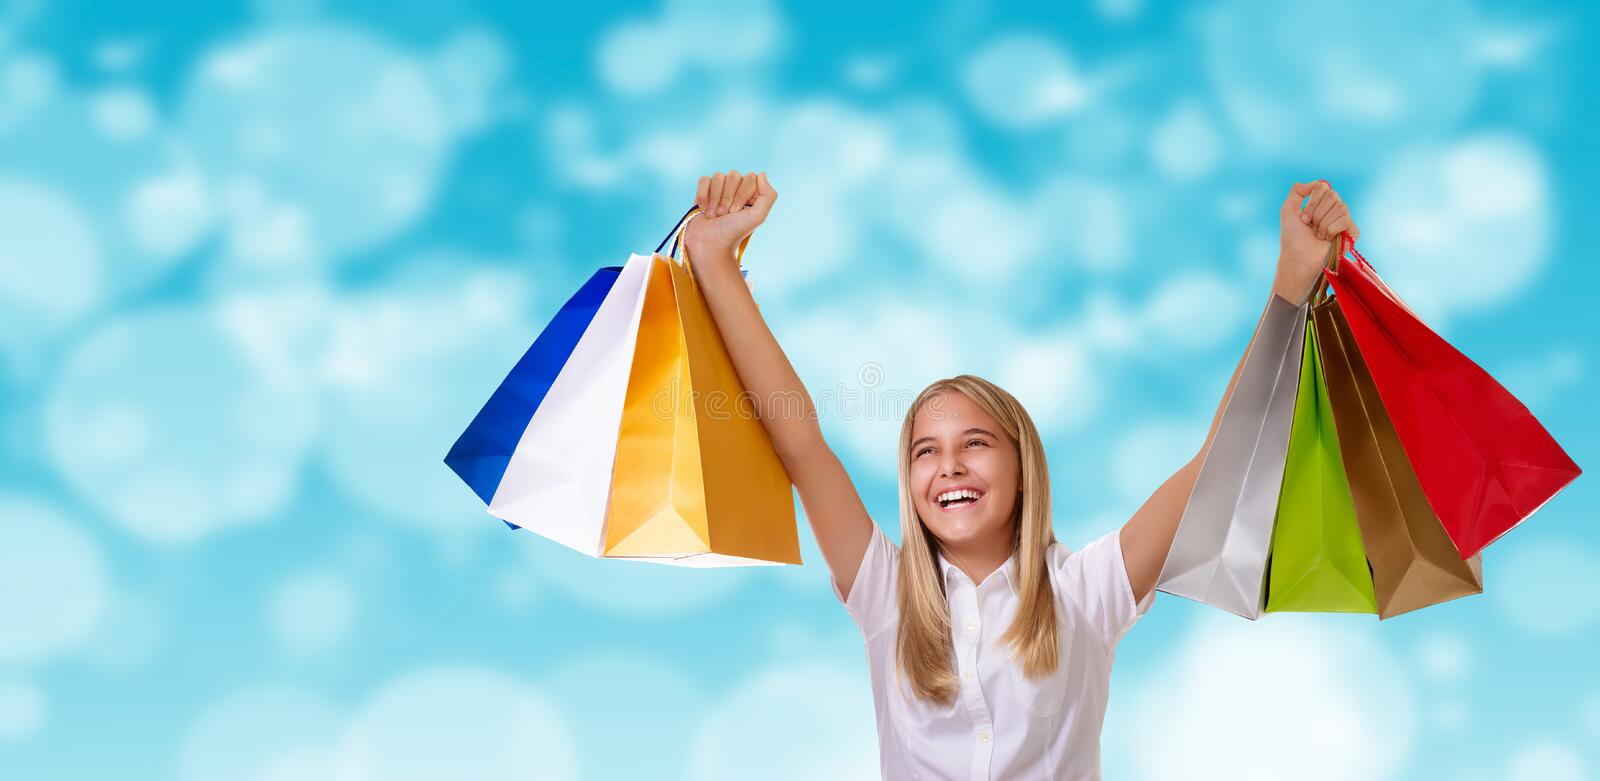 Shopping,holiday and tourism concept - happy cheerful girl with shopping bags over blurred background stock photos